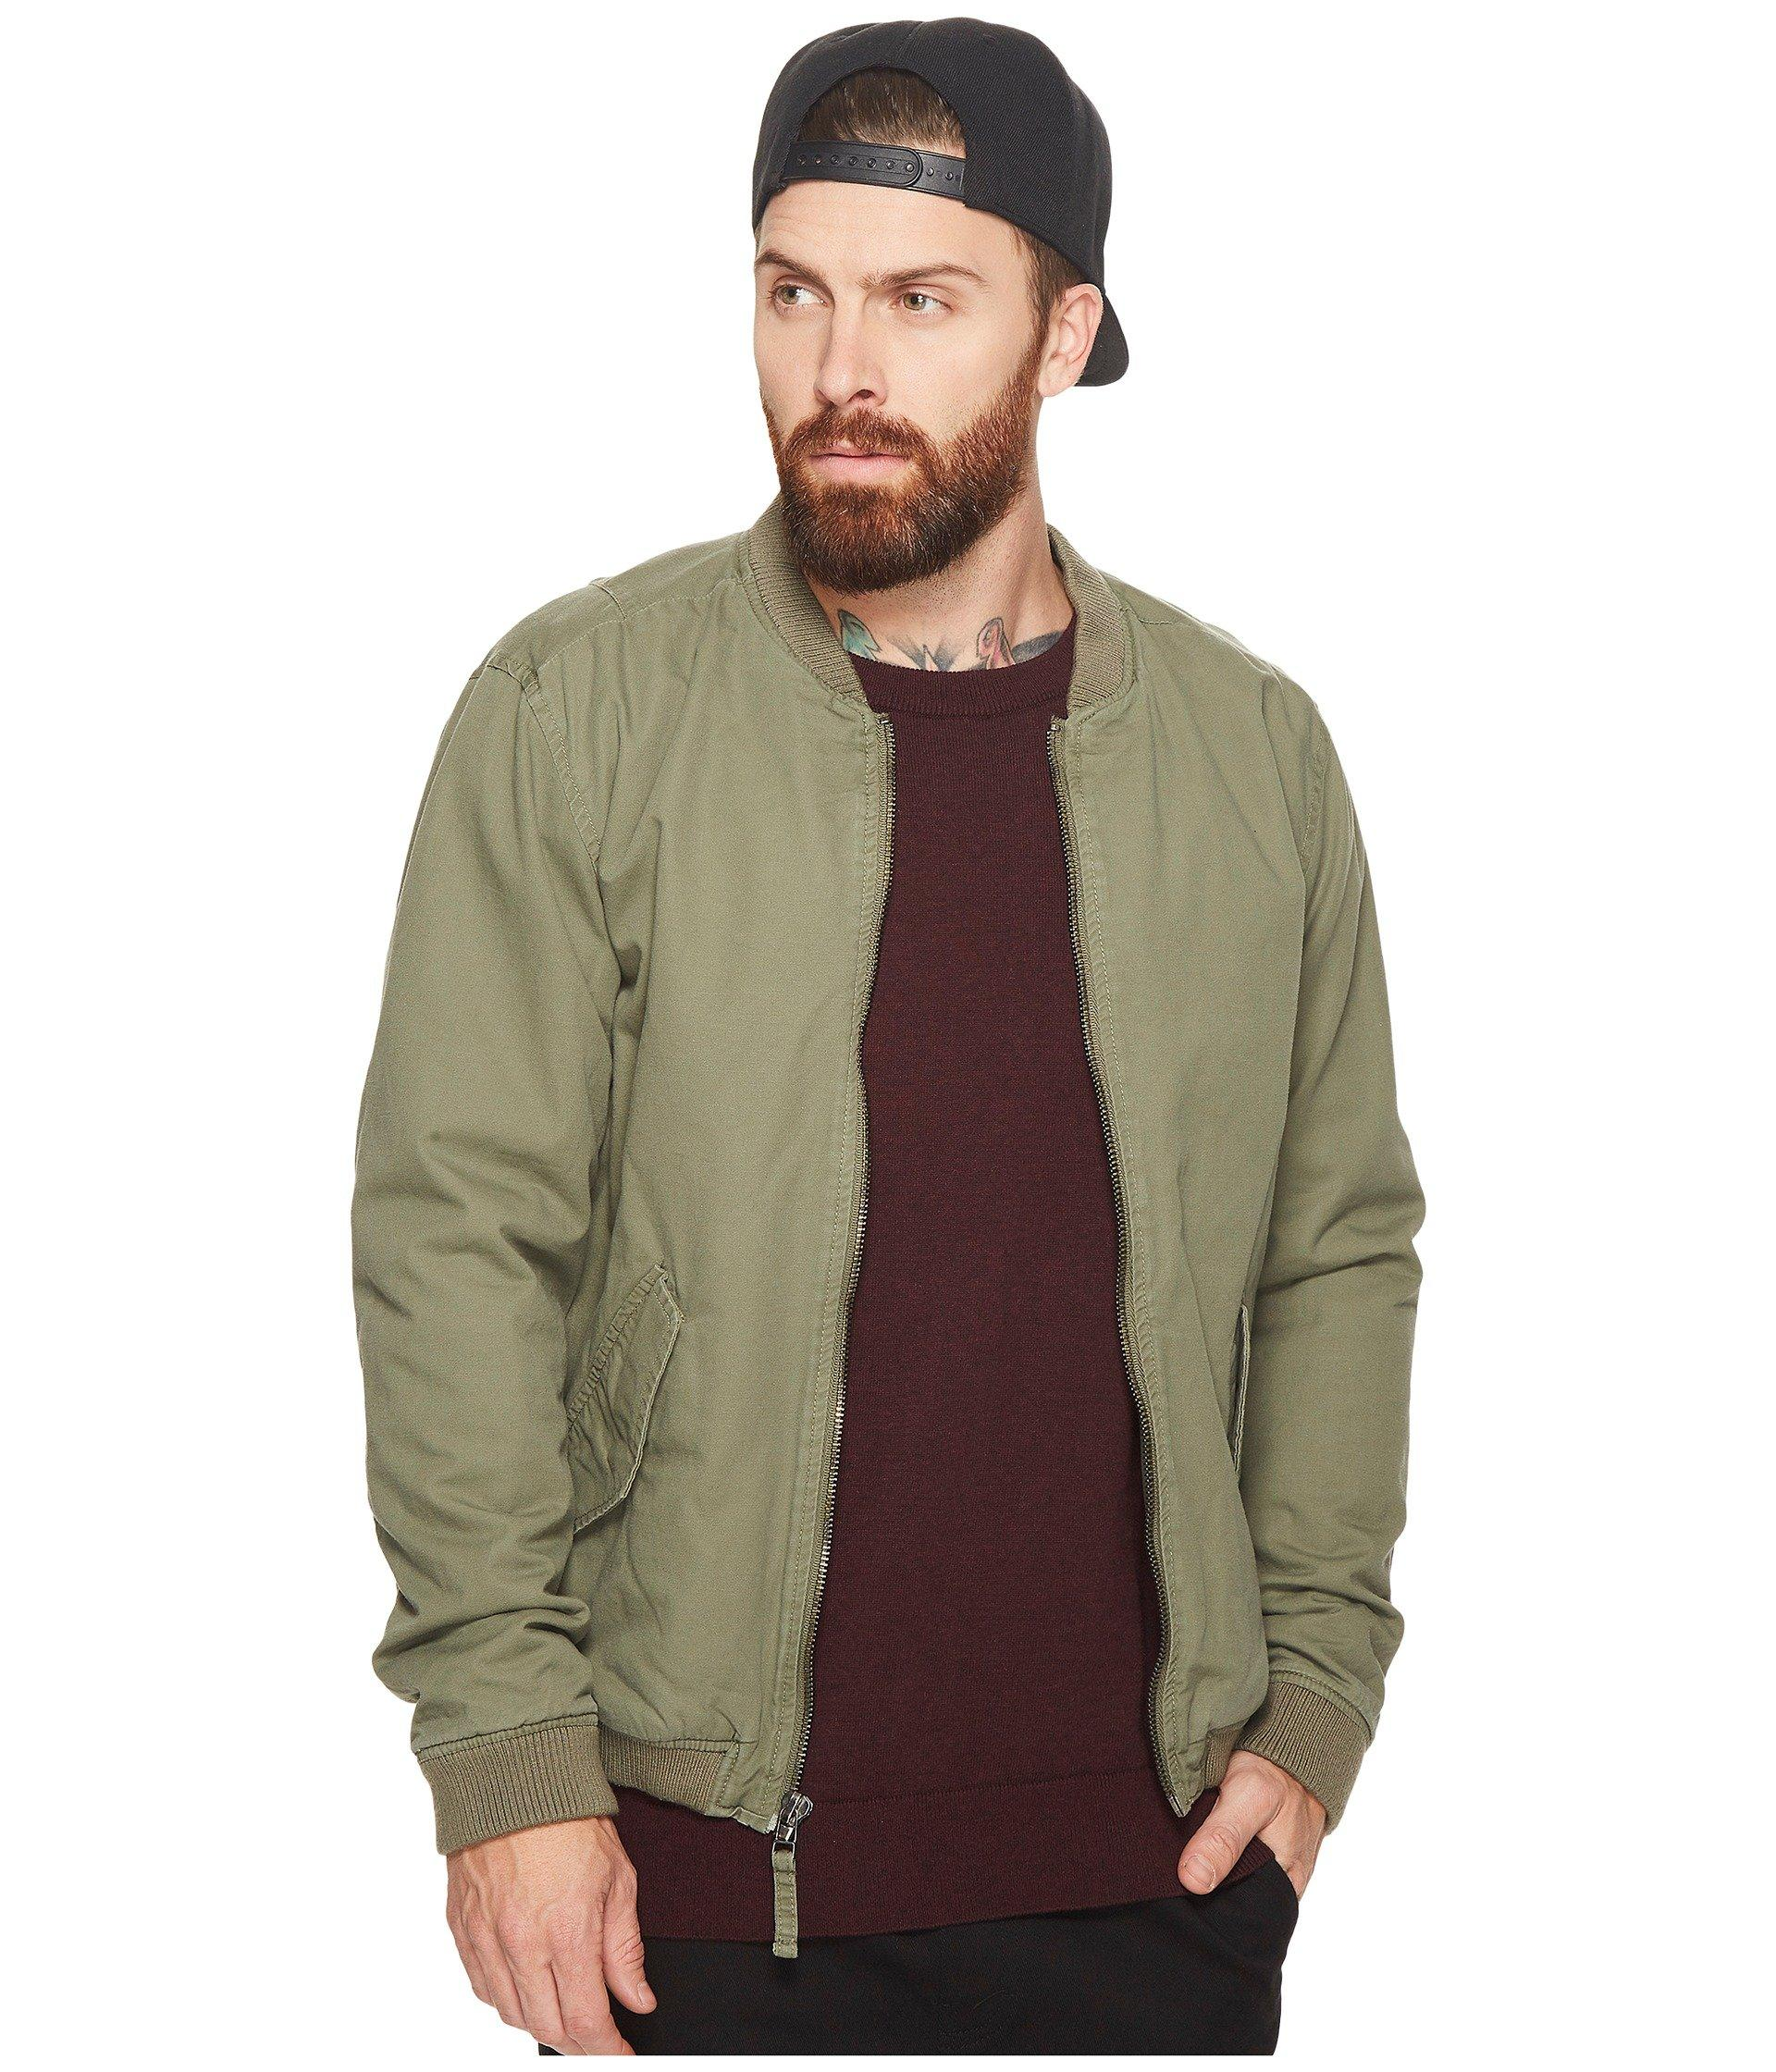 Rvca All City Bomber Jacket In Burnt Olive